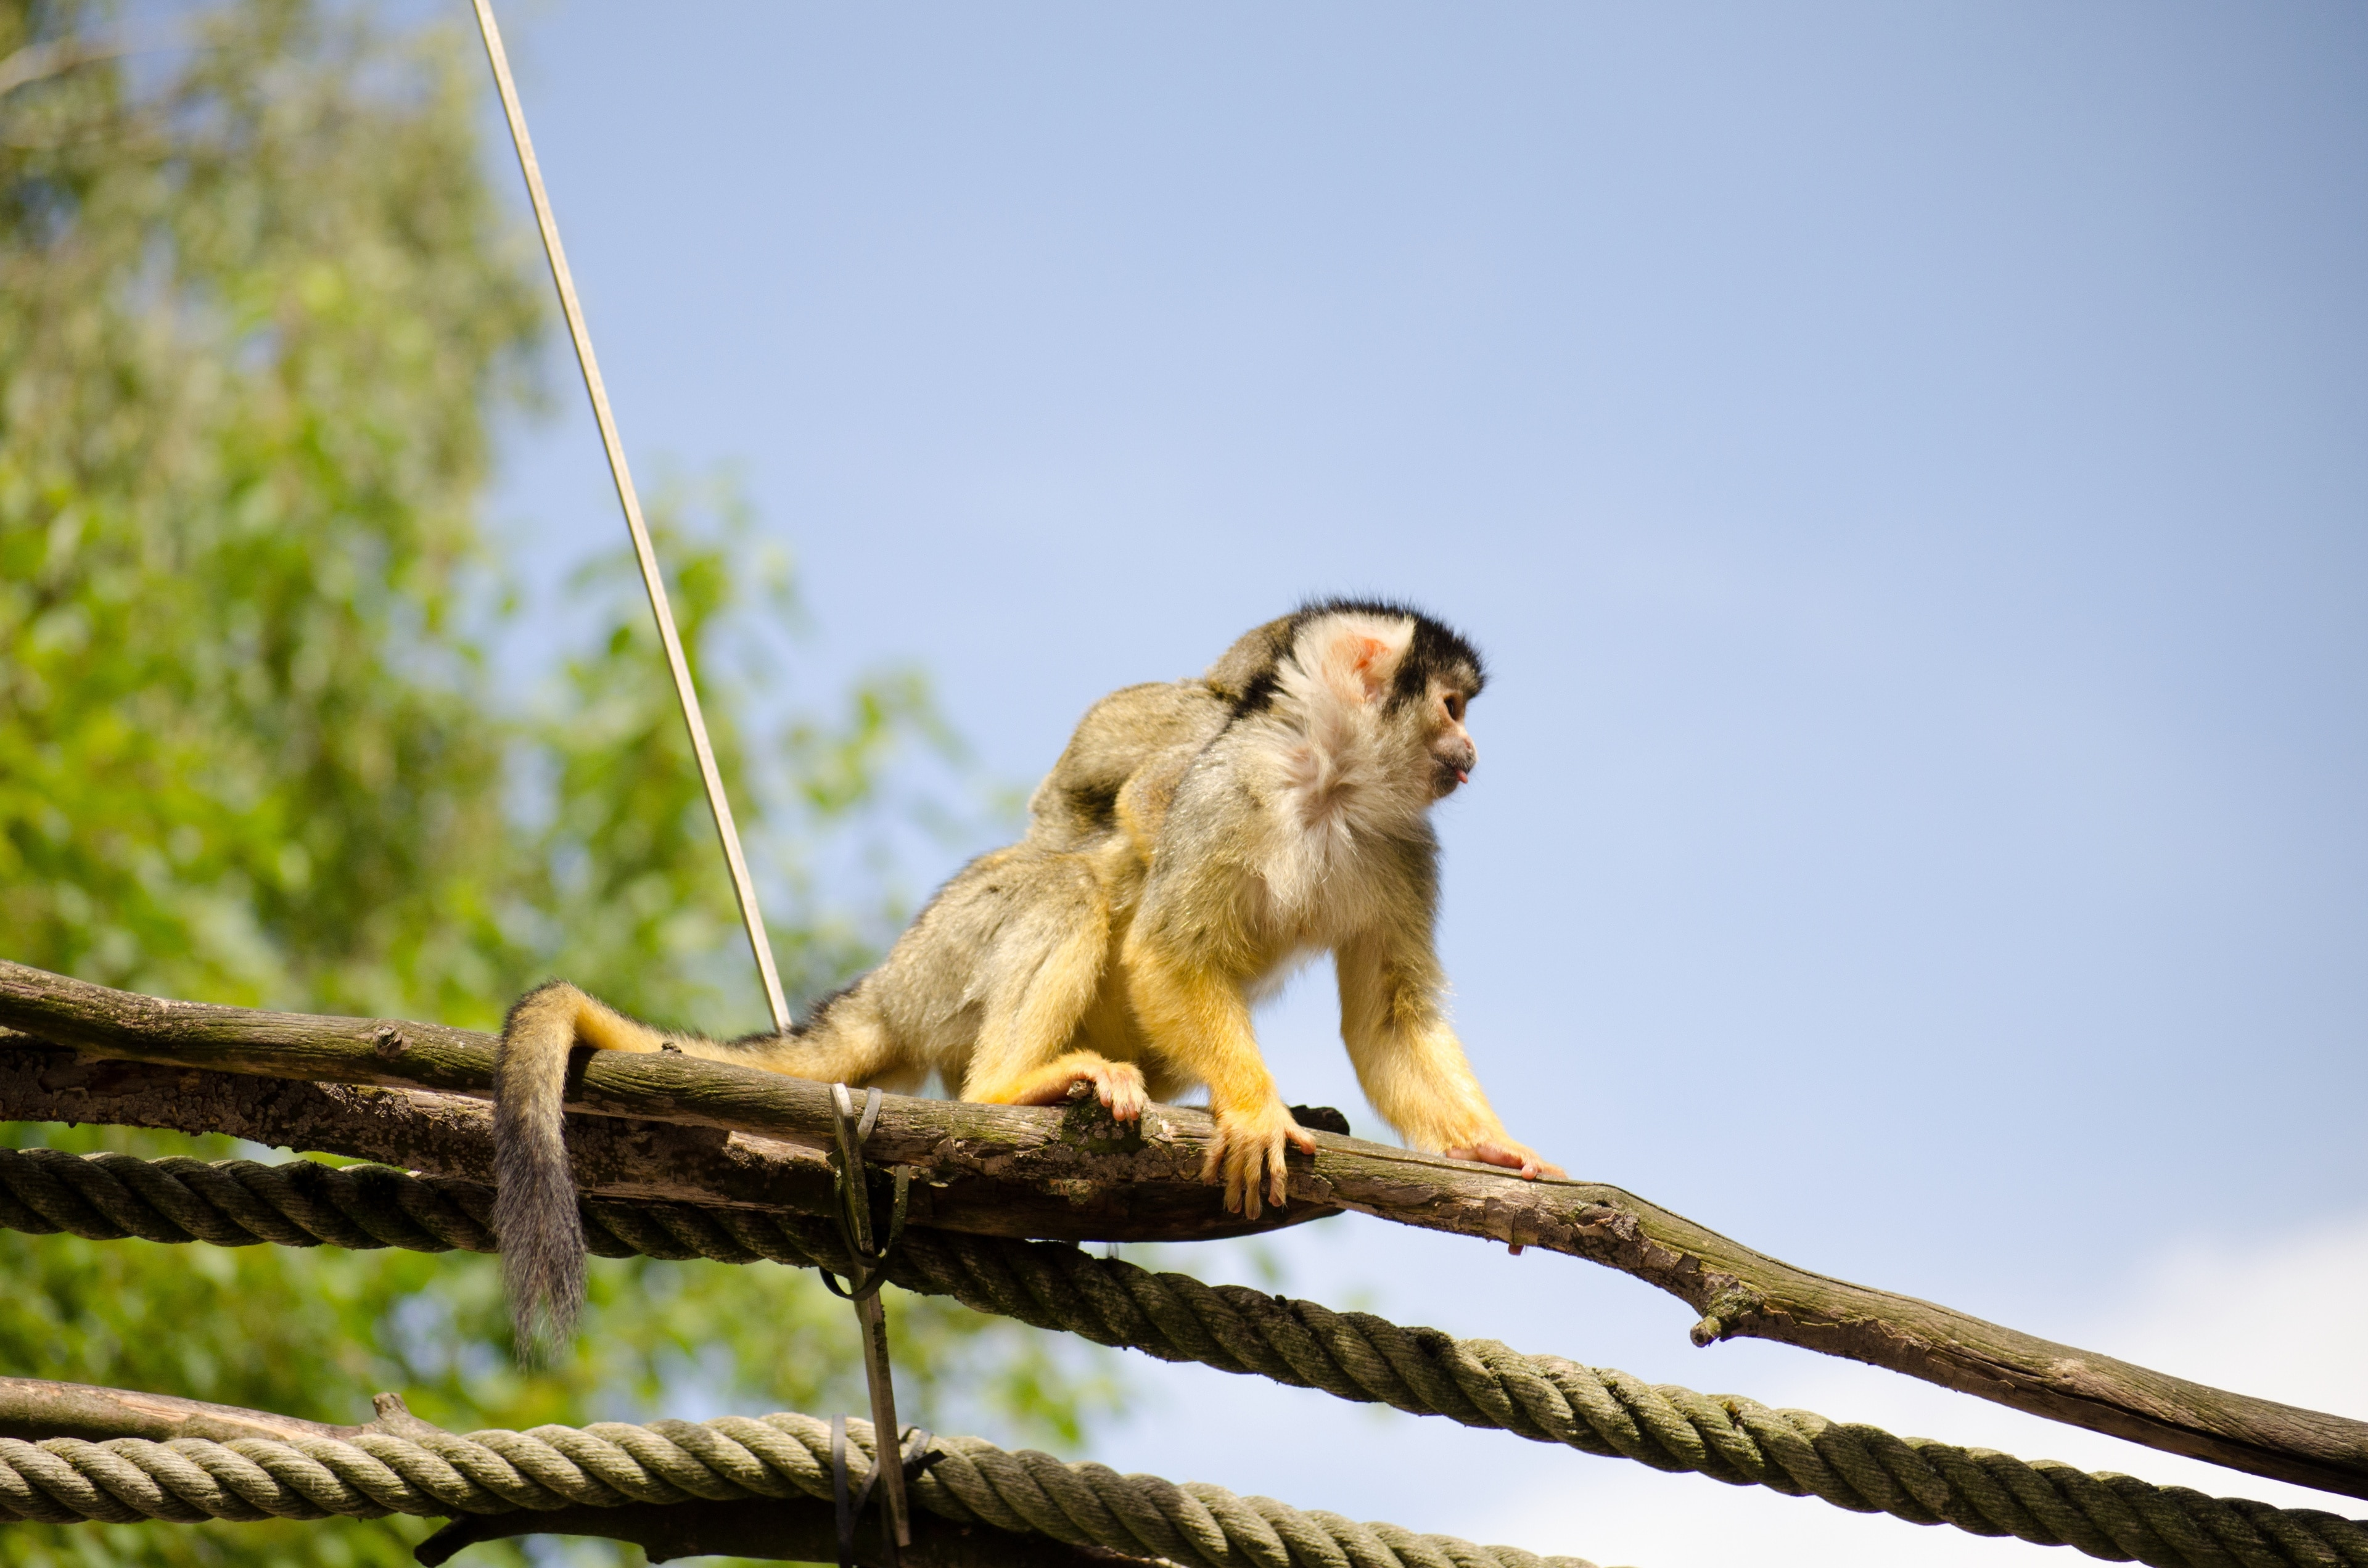 Why not meet the animals who live at Nuremberg Zoo during your trip to Ost? Experience the area's festivals and museums.